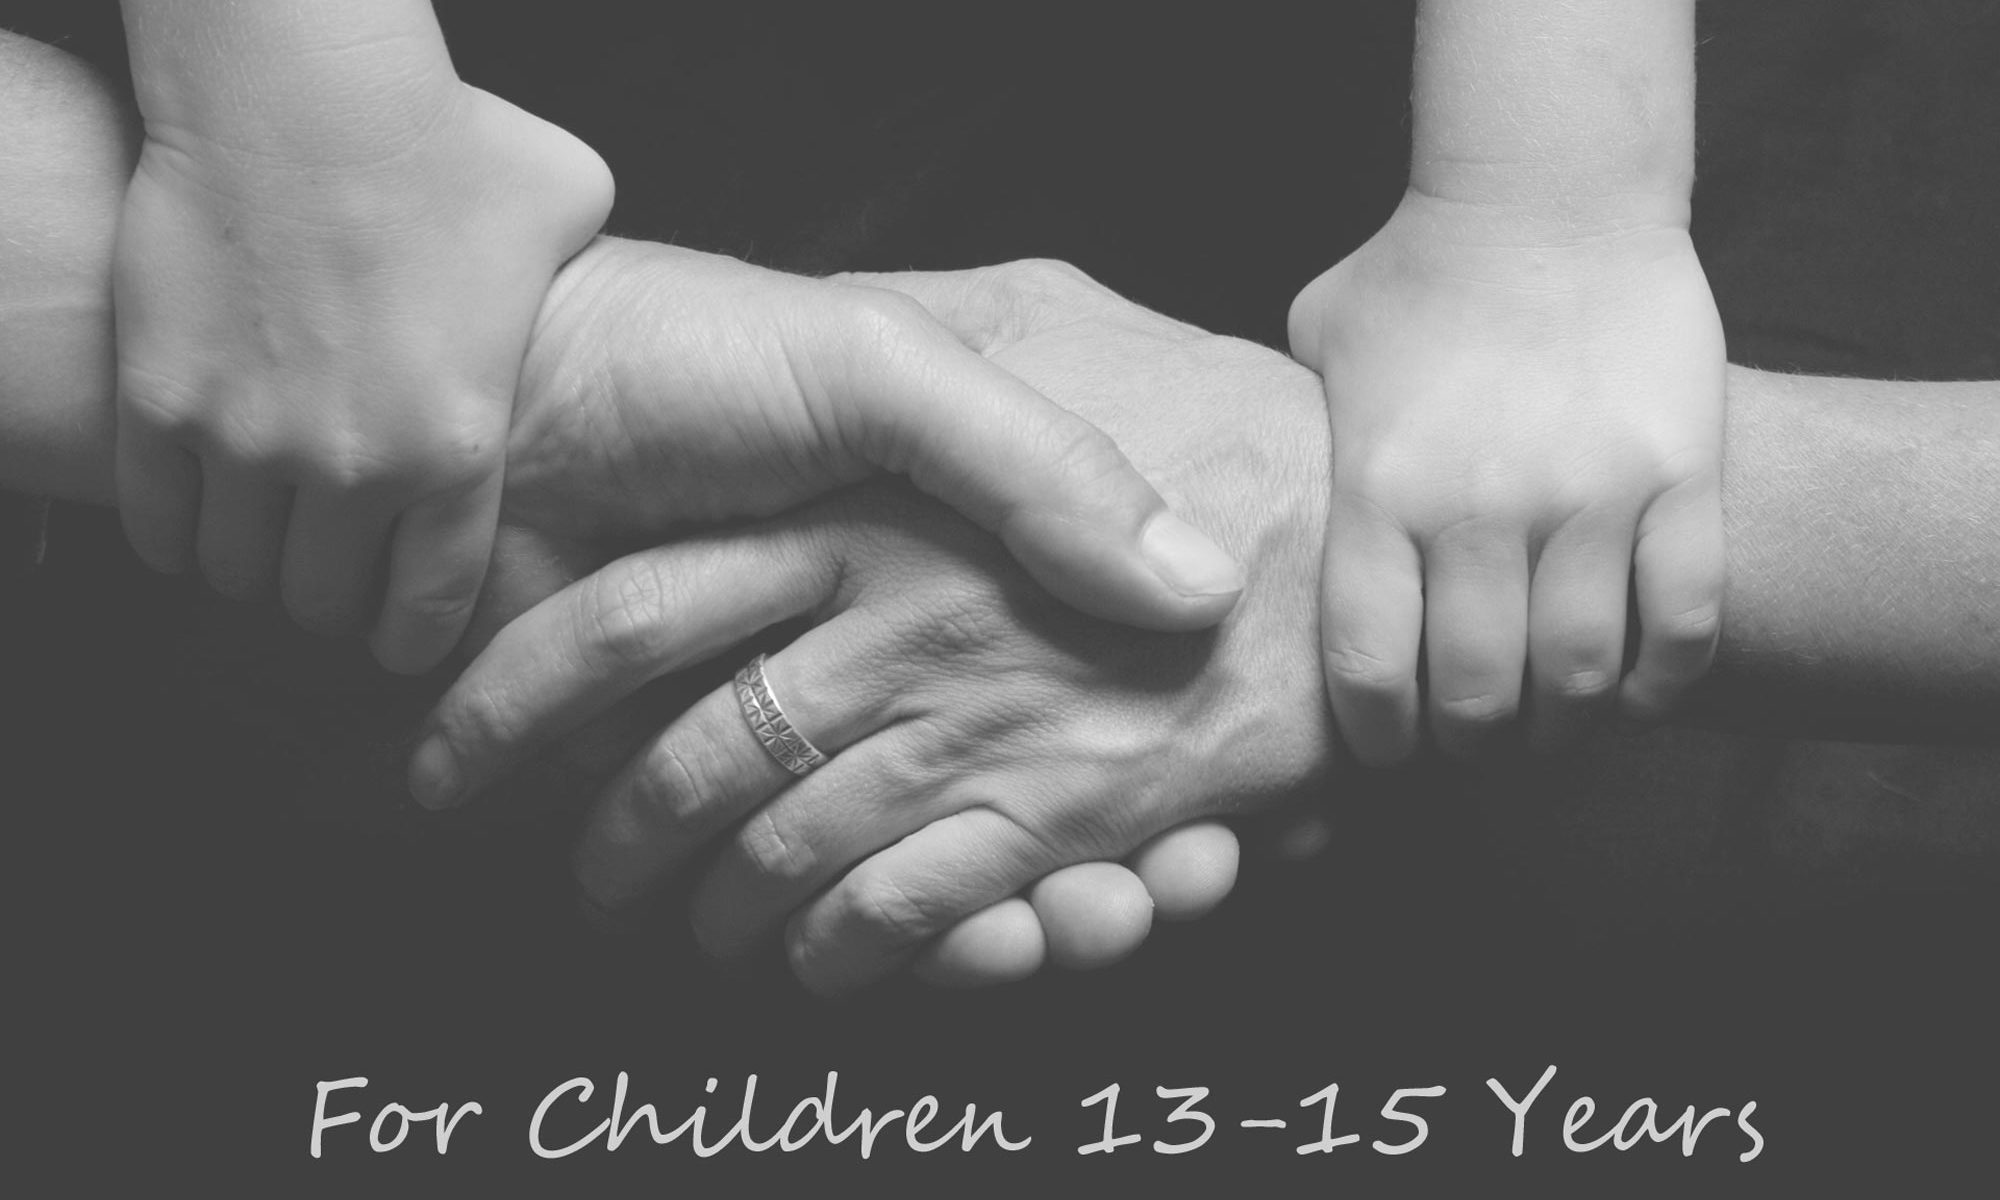 parenting plans for children 13-15 years old